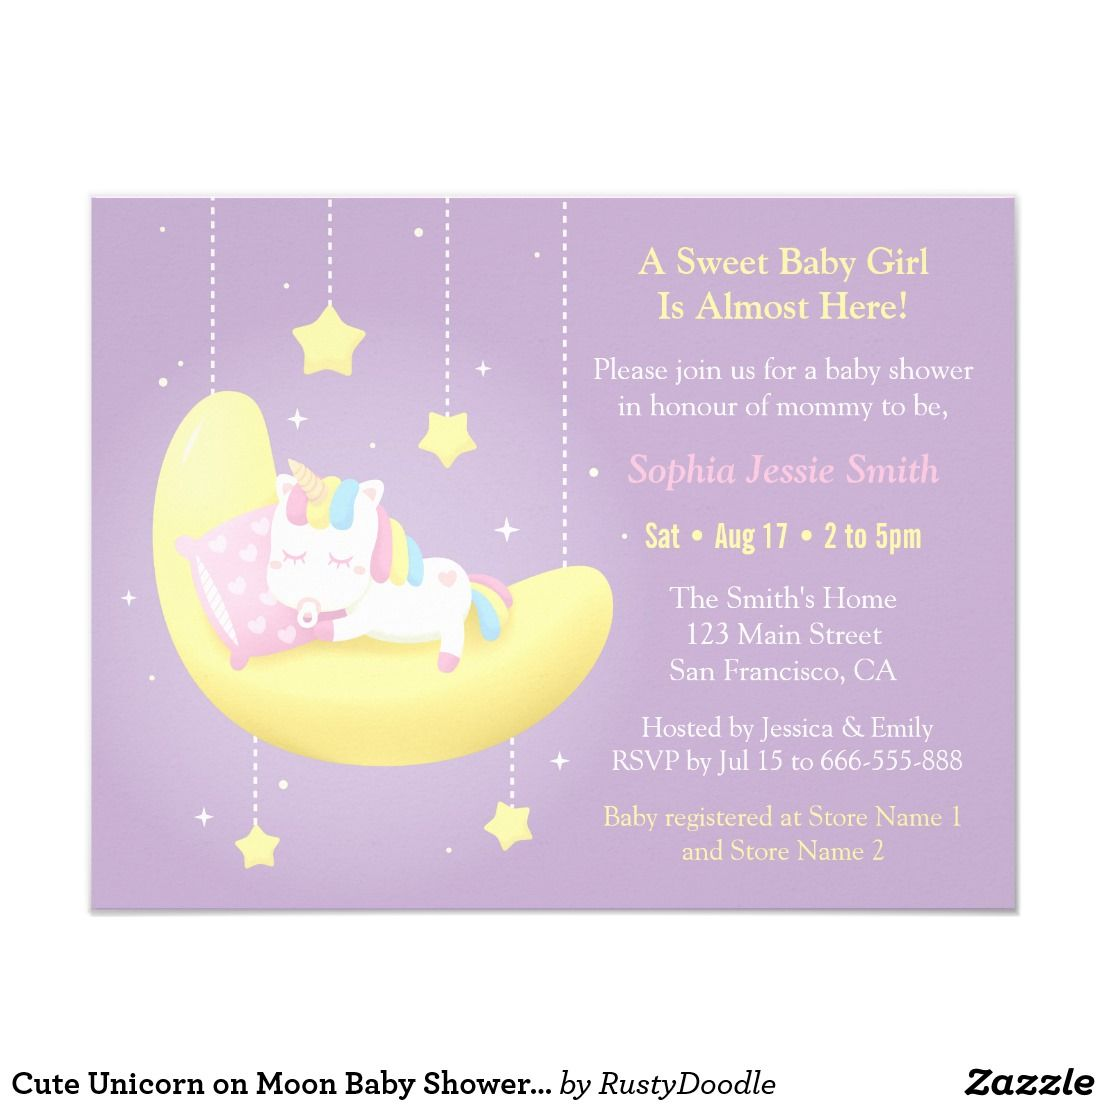 Cute Unicorn on Moon Baby Shower Invitations | Shower invitations